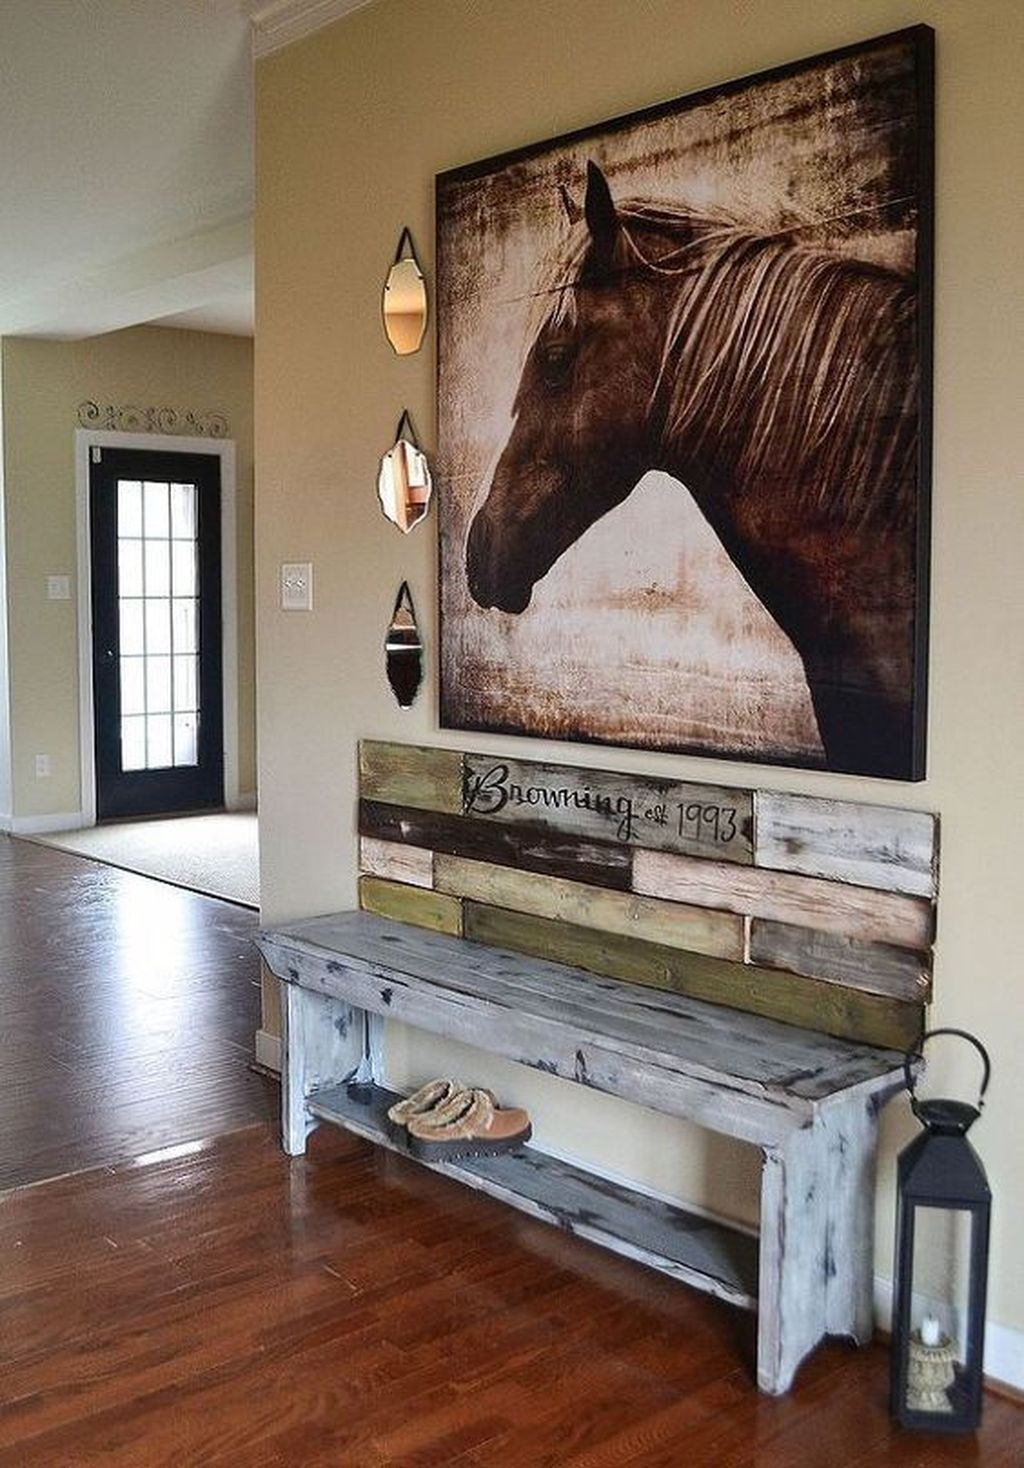 modern rustic decor ideas to makes your apartment look classy